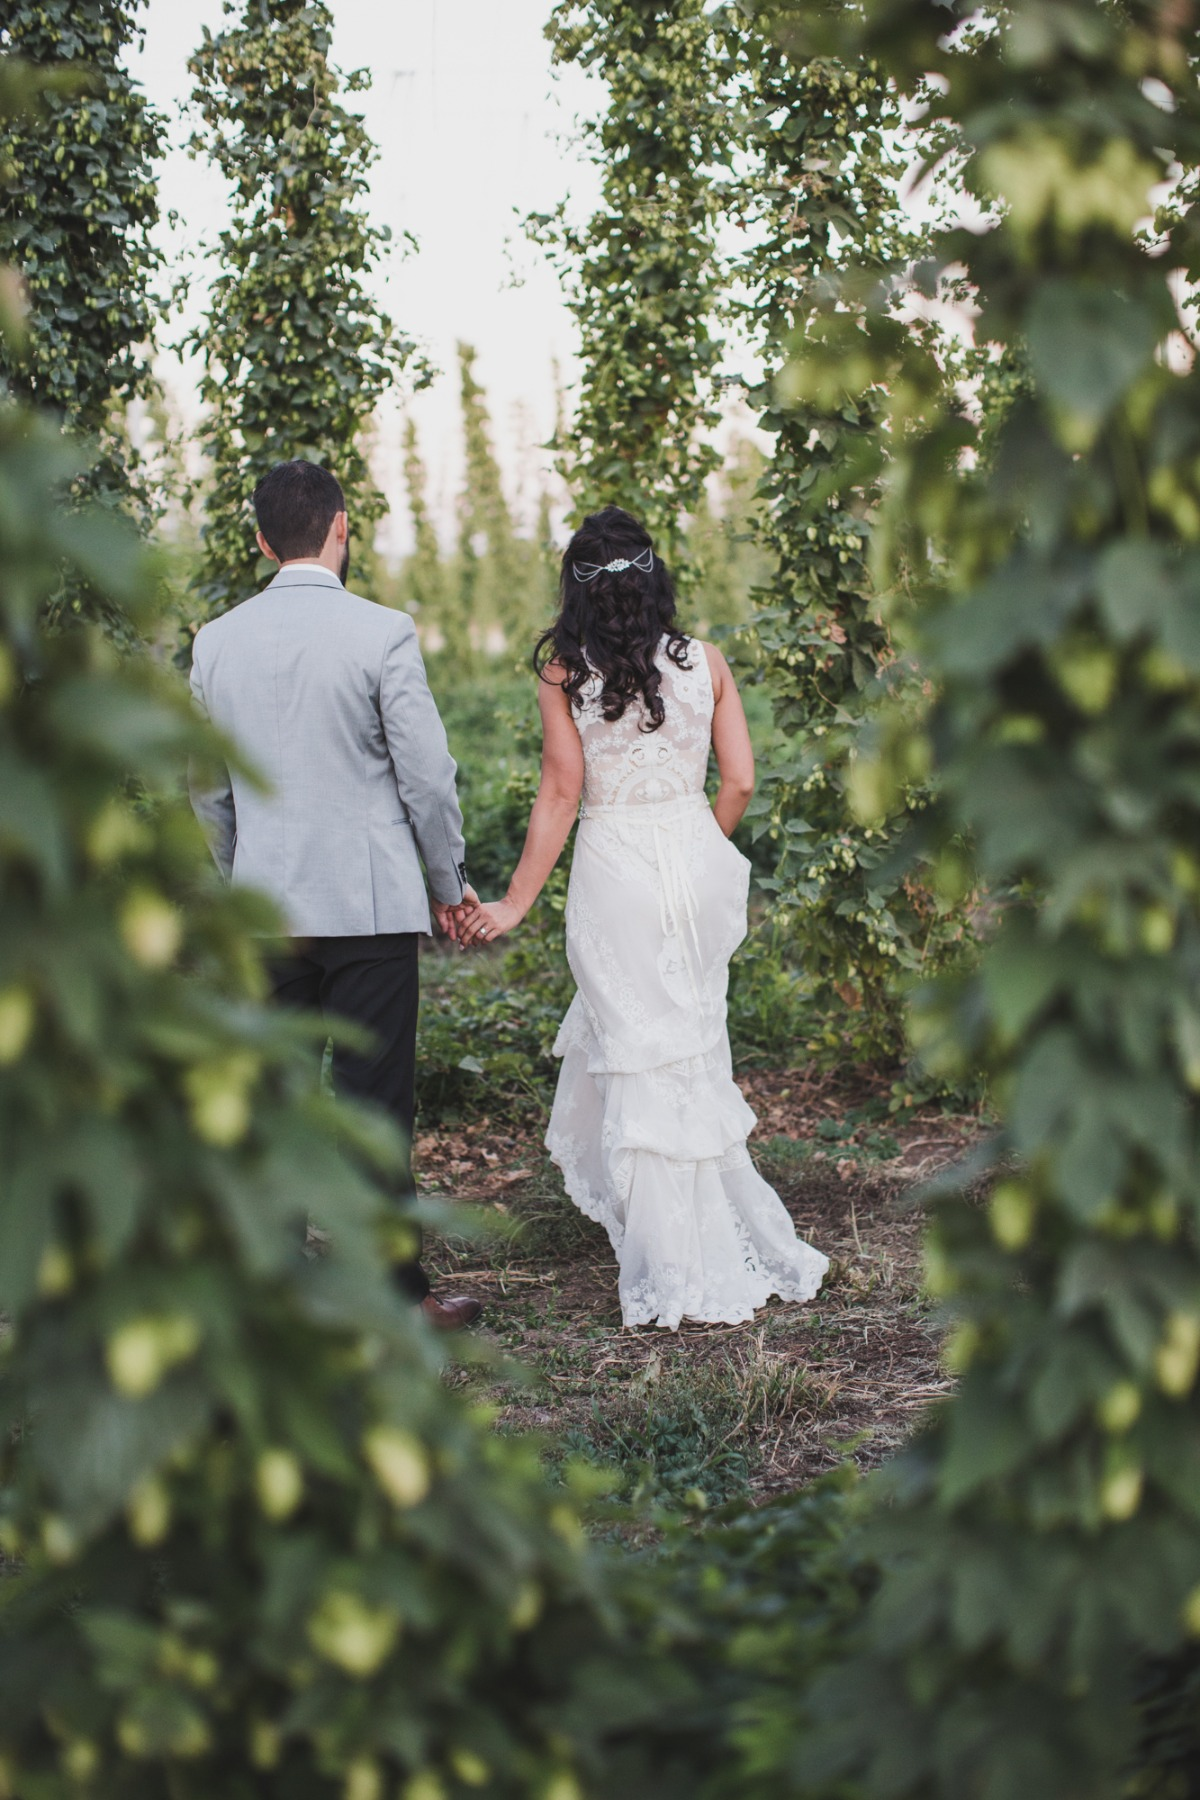 a wedding walk through the hops